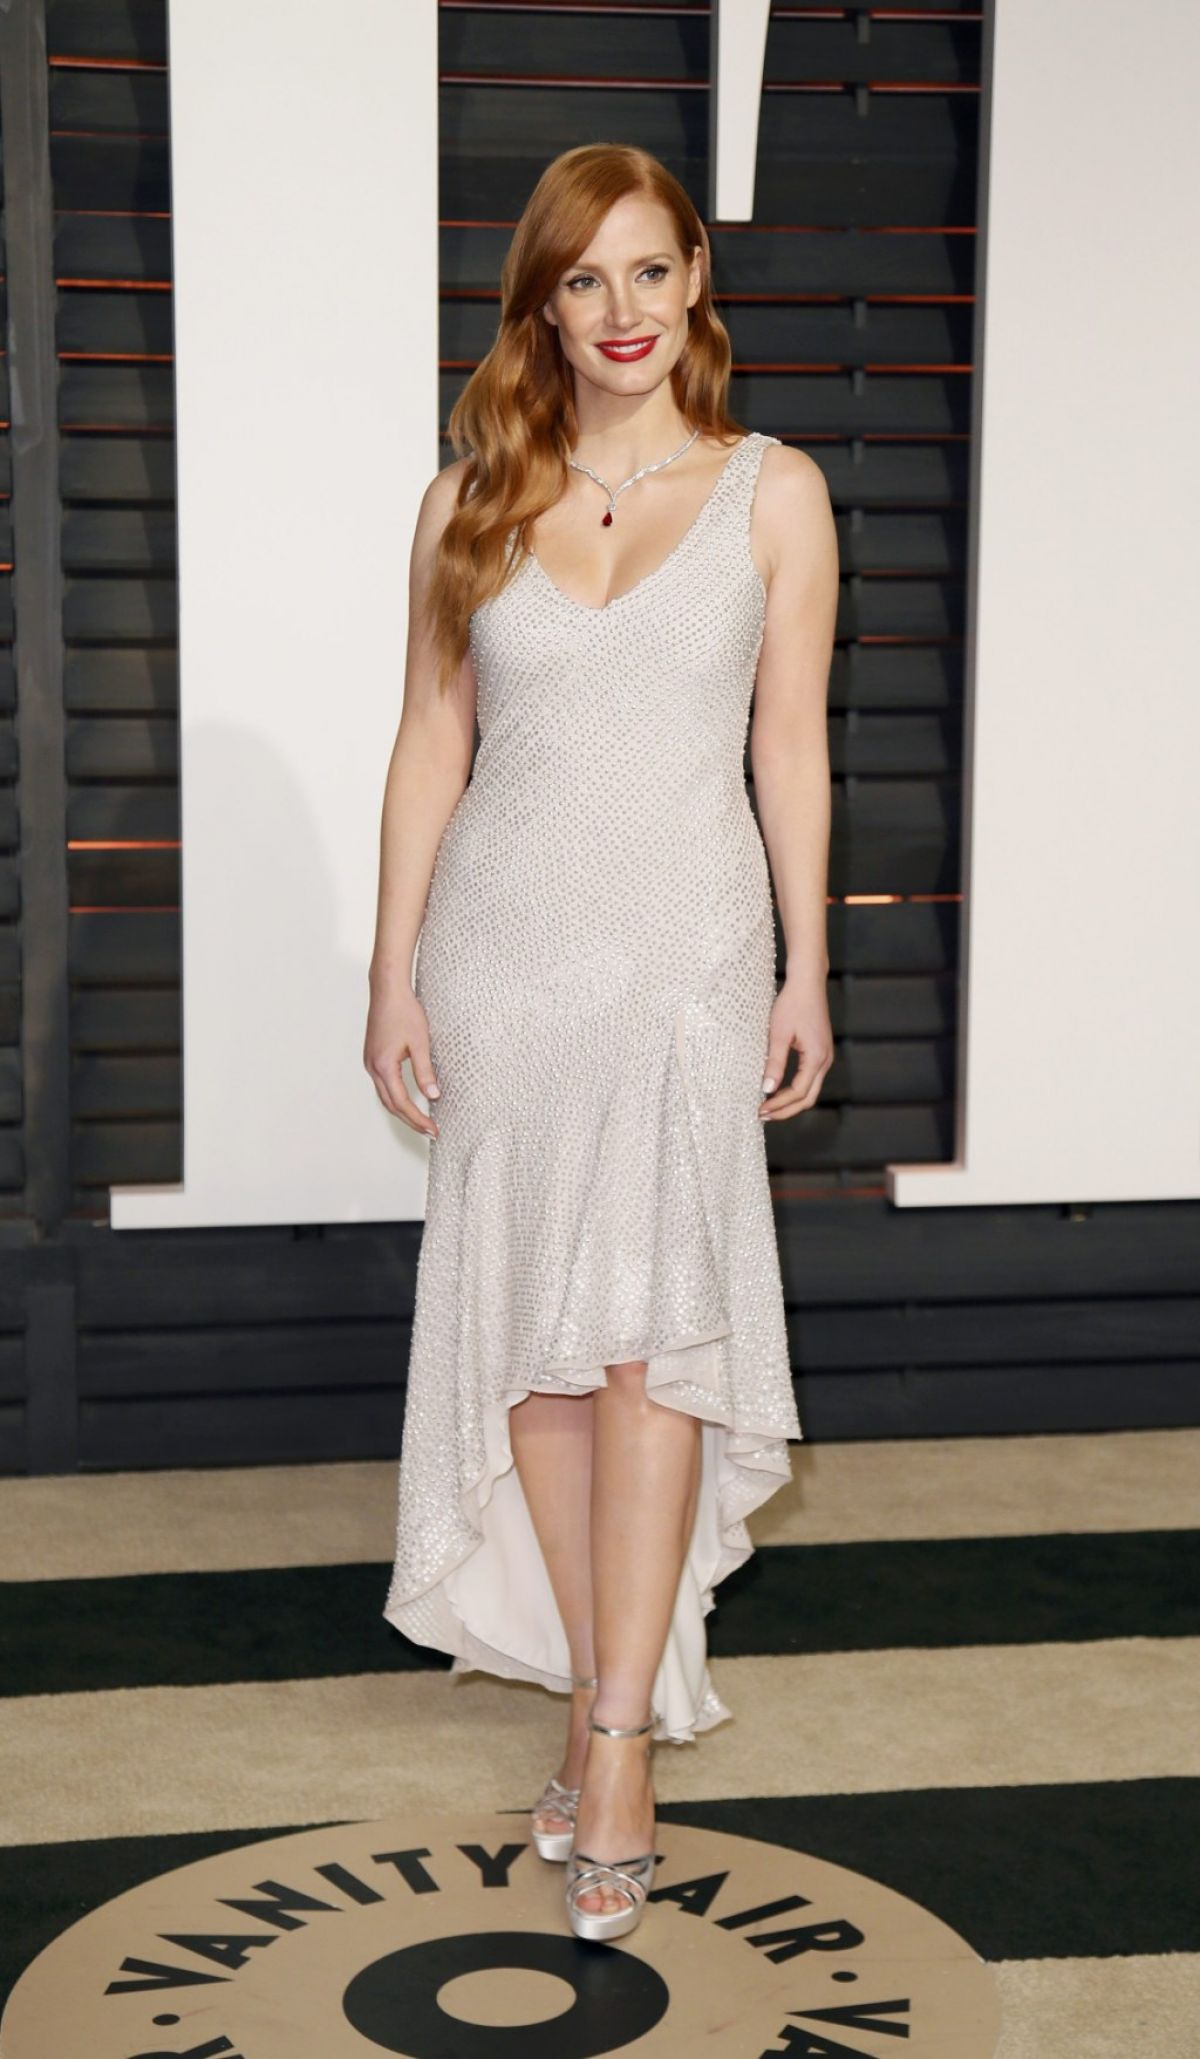 JESSICA CHATAIN at Vanity Fair Oscar Party in Hollywood